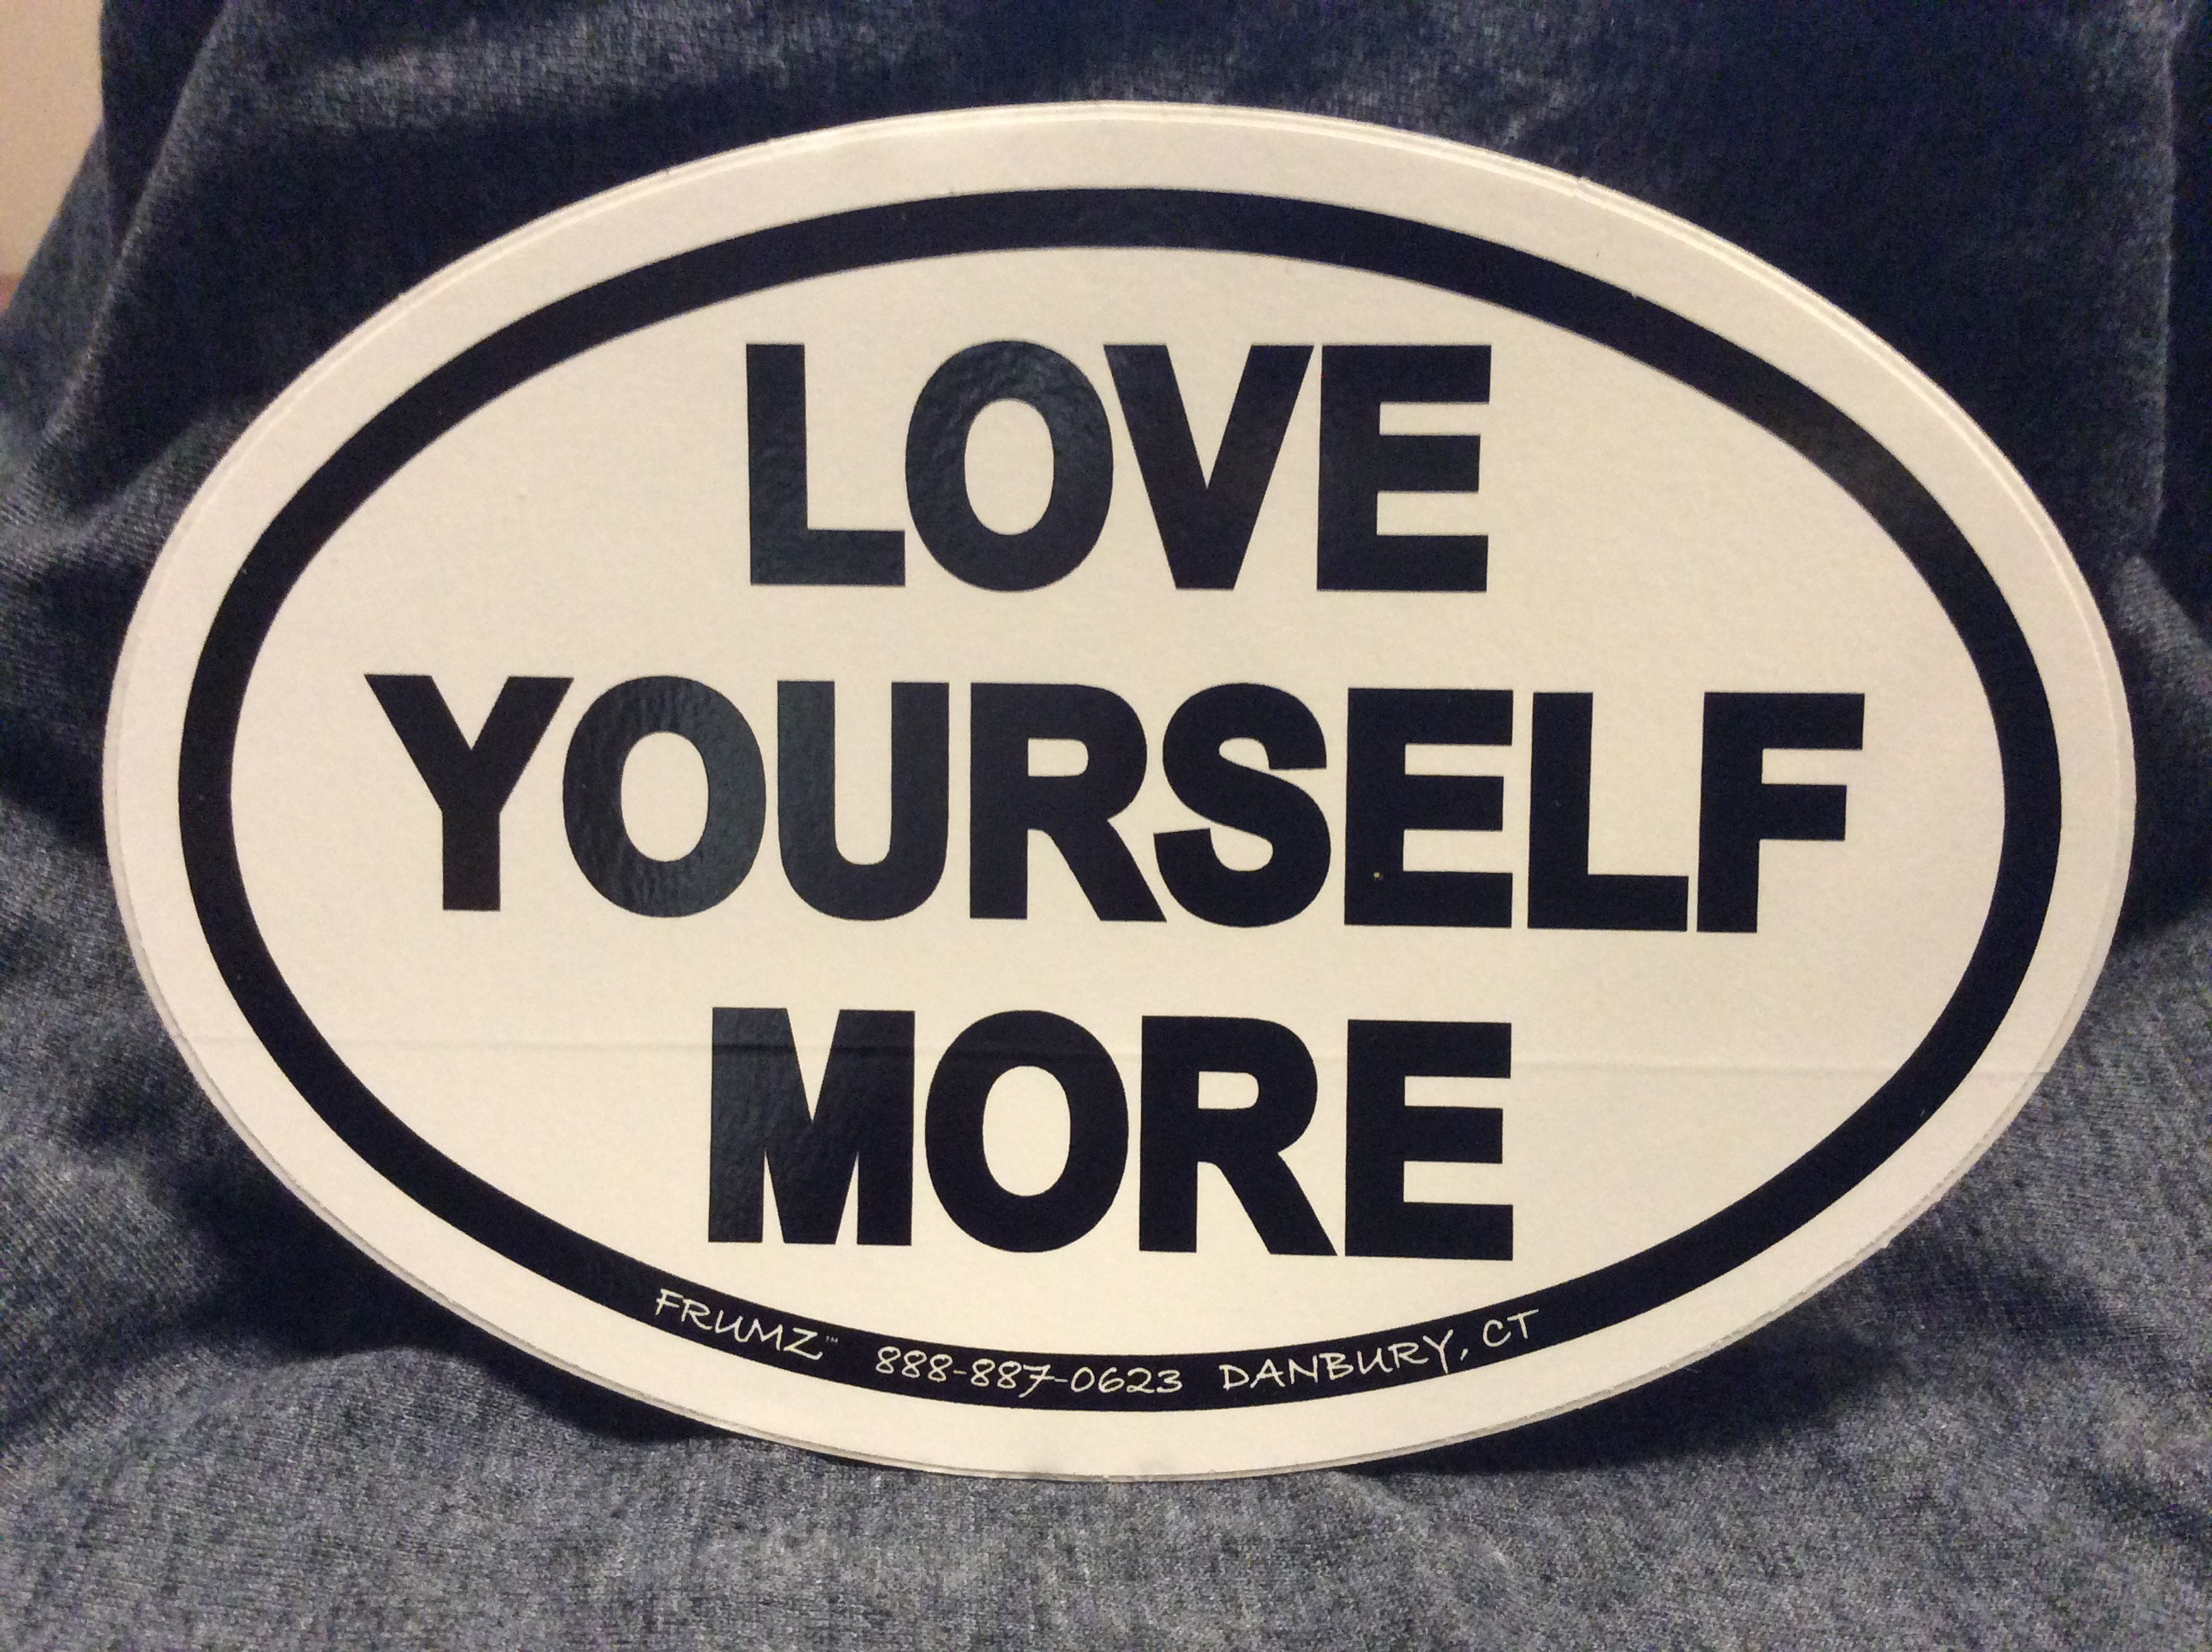 LOVE YOURSELF MORE oval sticker decal